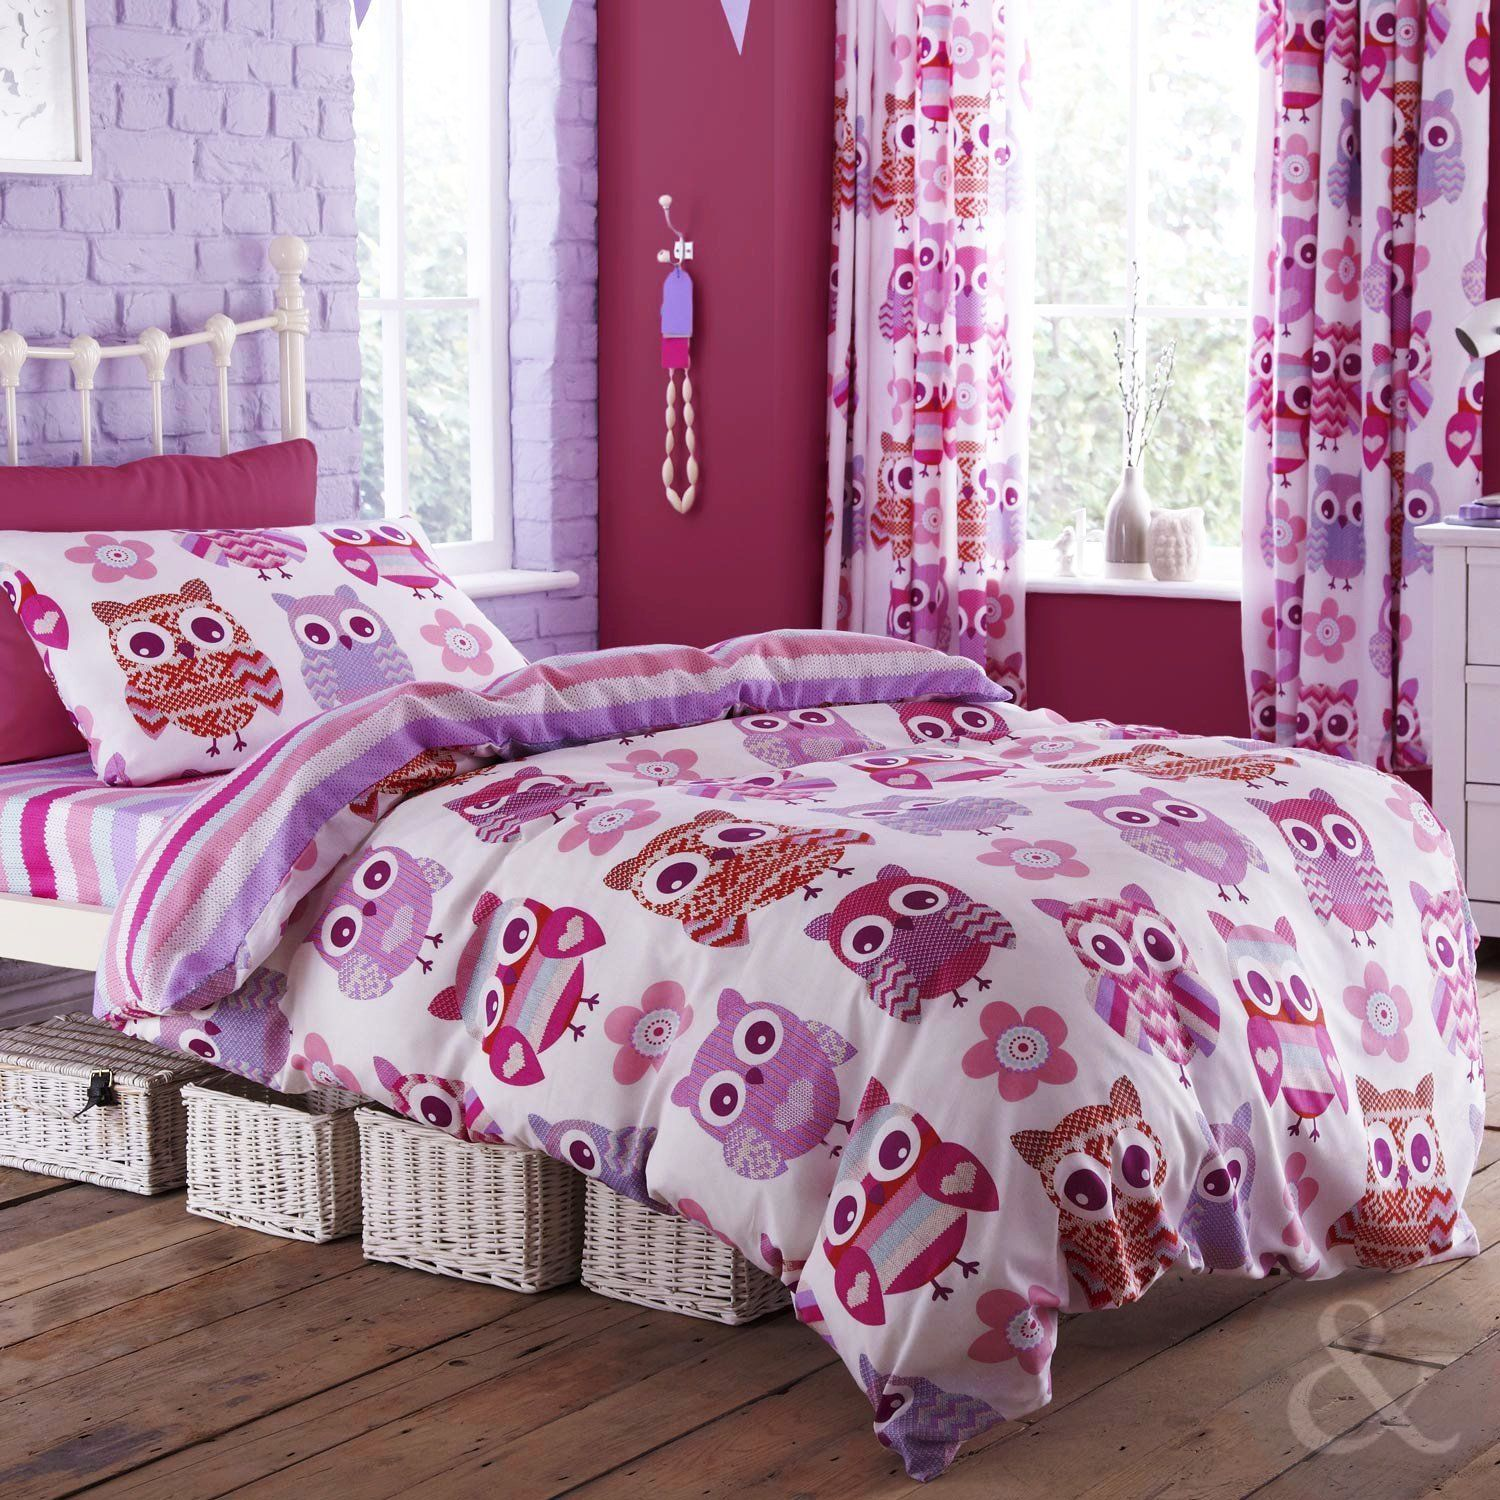 Bedding And Matching Curtains Catherine Lansfield Girls